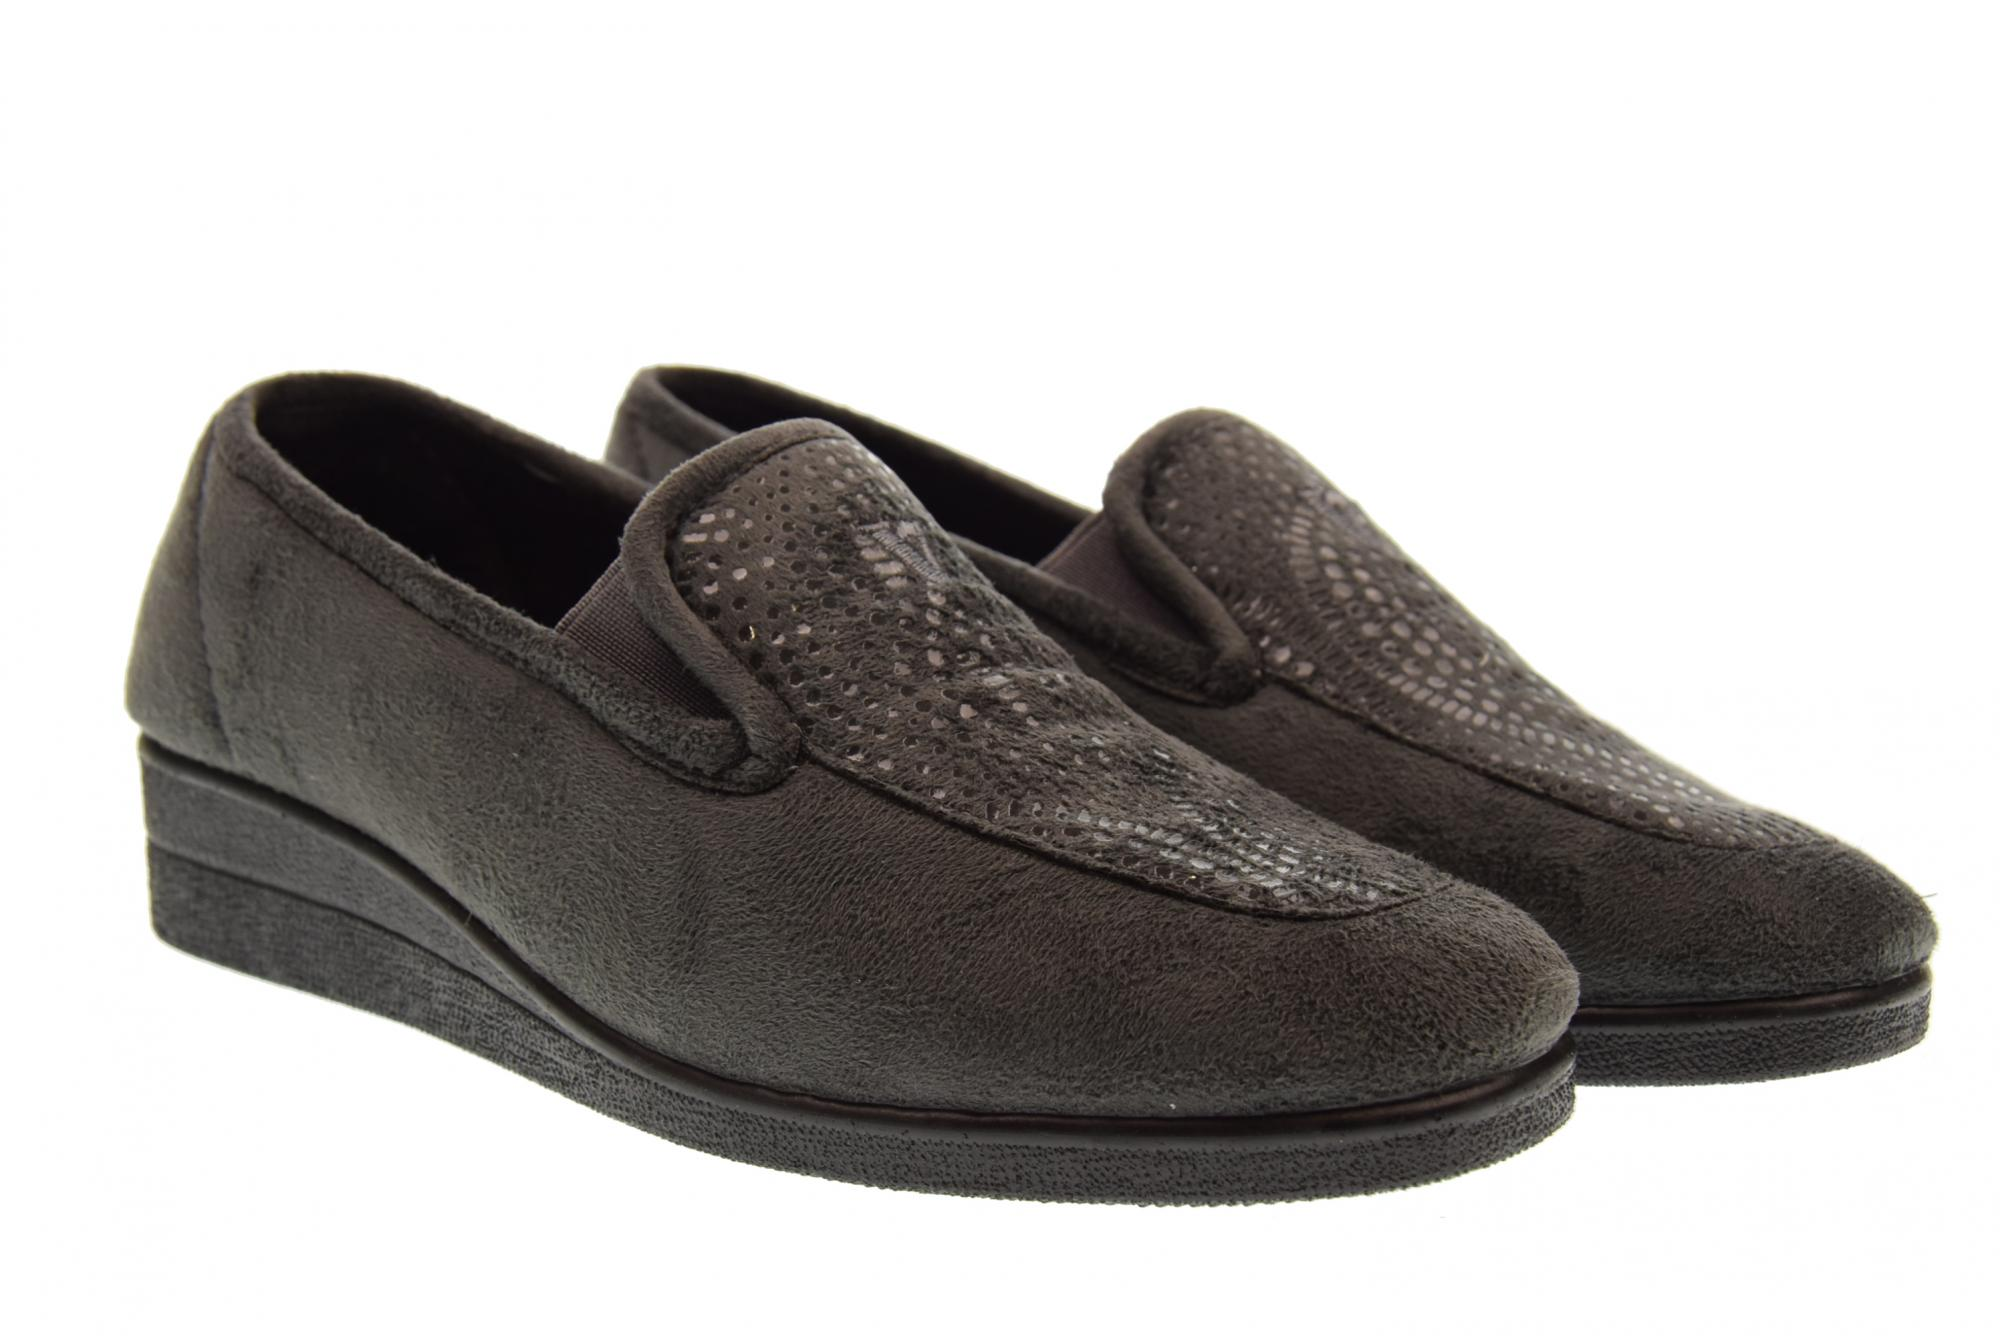 Vallegreen A18f shoes femme chaussons 23210 ANTHRACITE